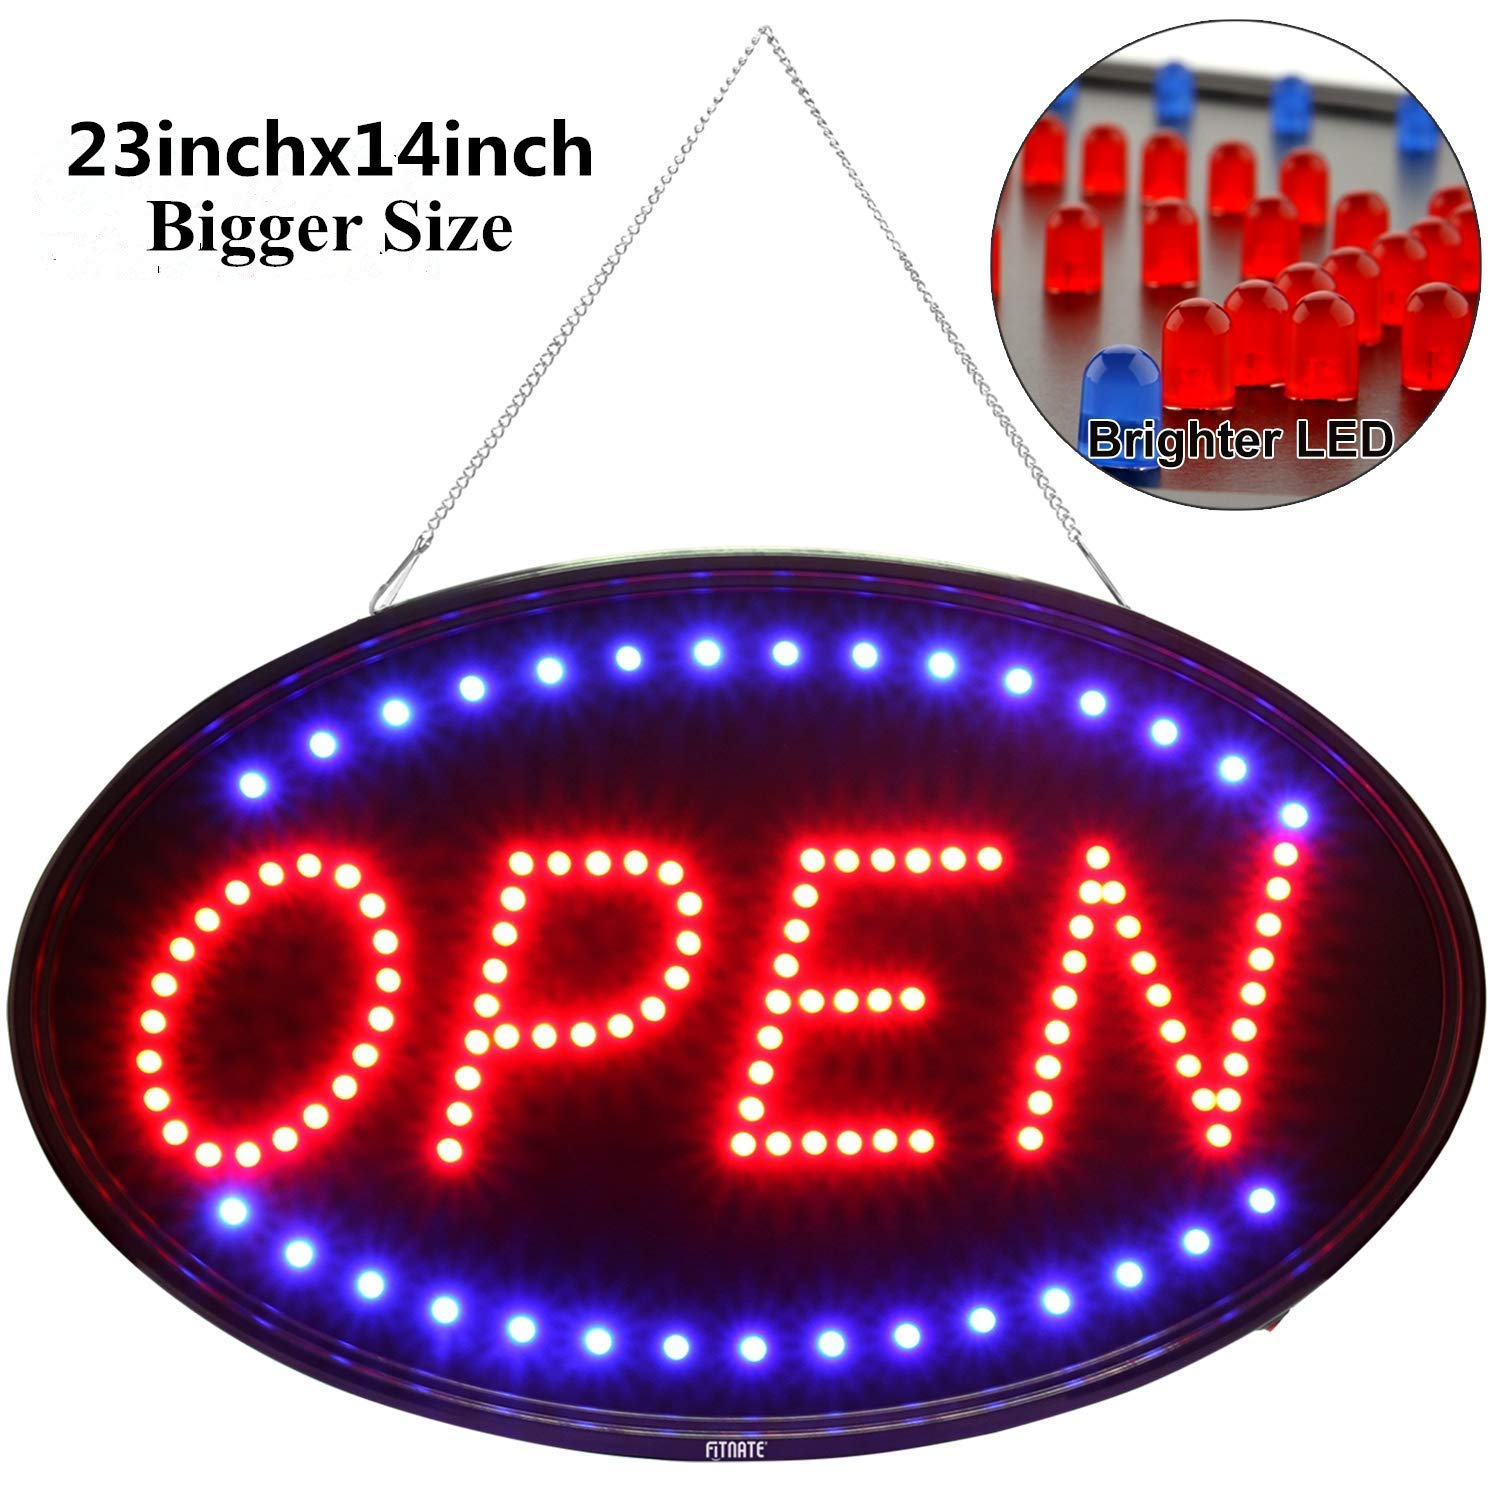 Fitnate Open Sign, 23x14inch Larger LED Business Sign, Advertisement Display Board, Two Modes Flashing & Steady Light,Super Bright F8 LED for Business, Walls, Window, Shop, bar, Hotel